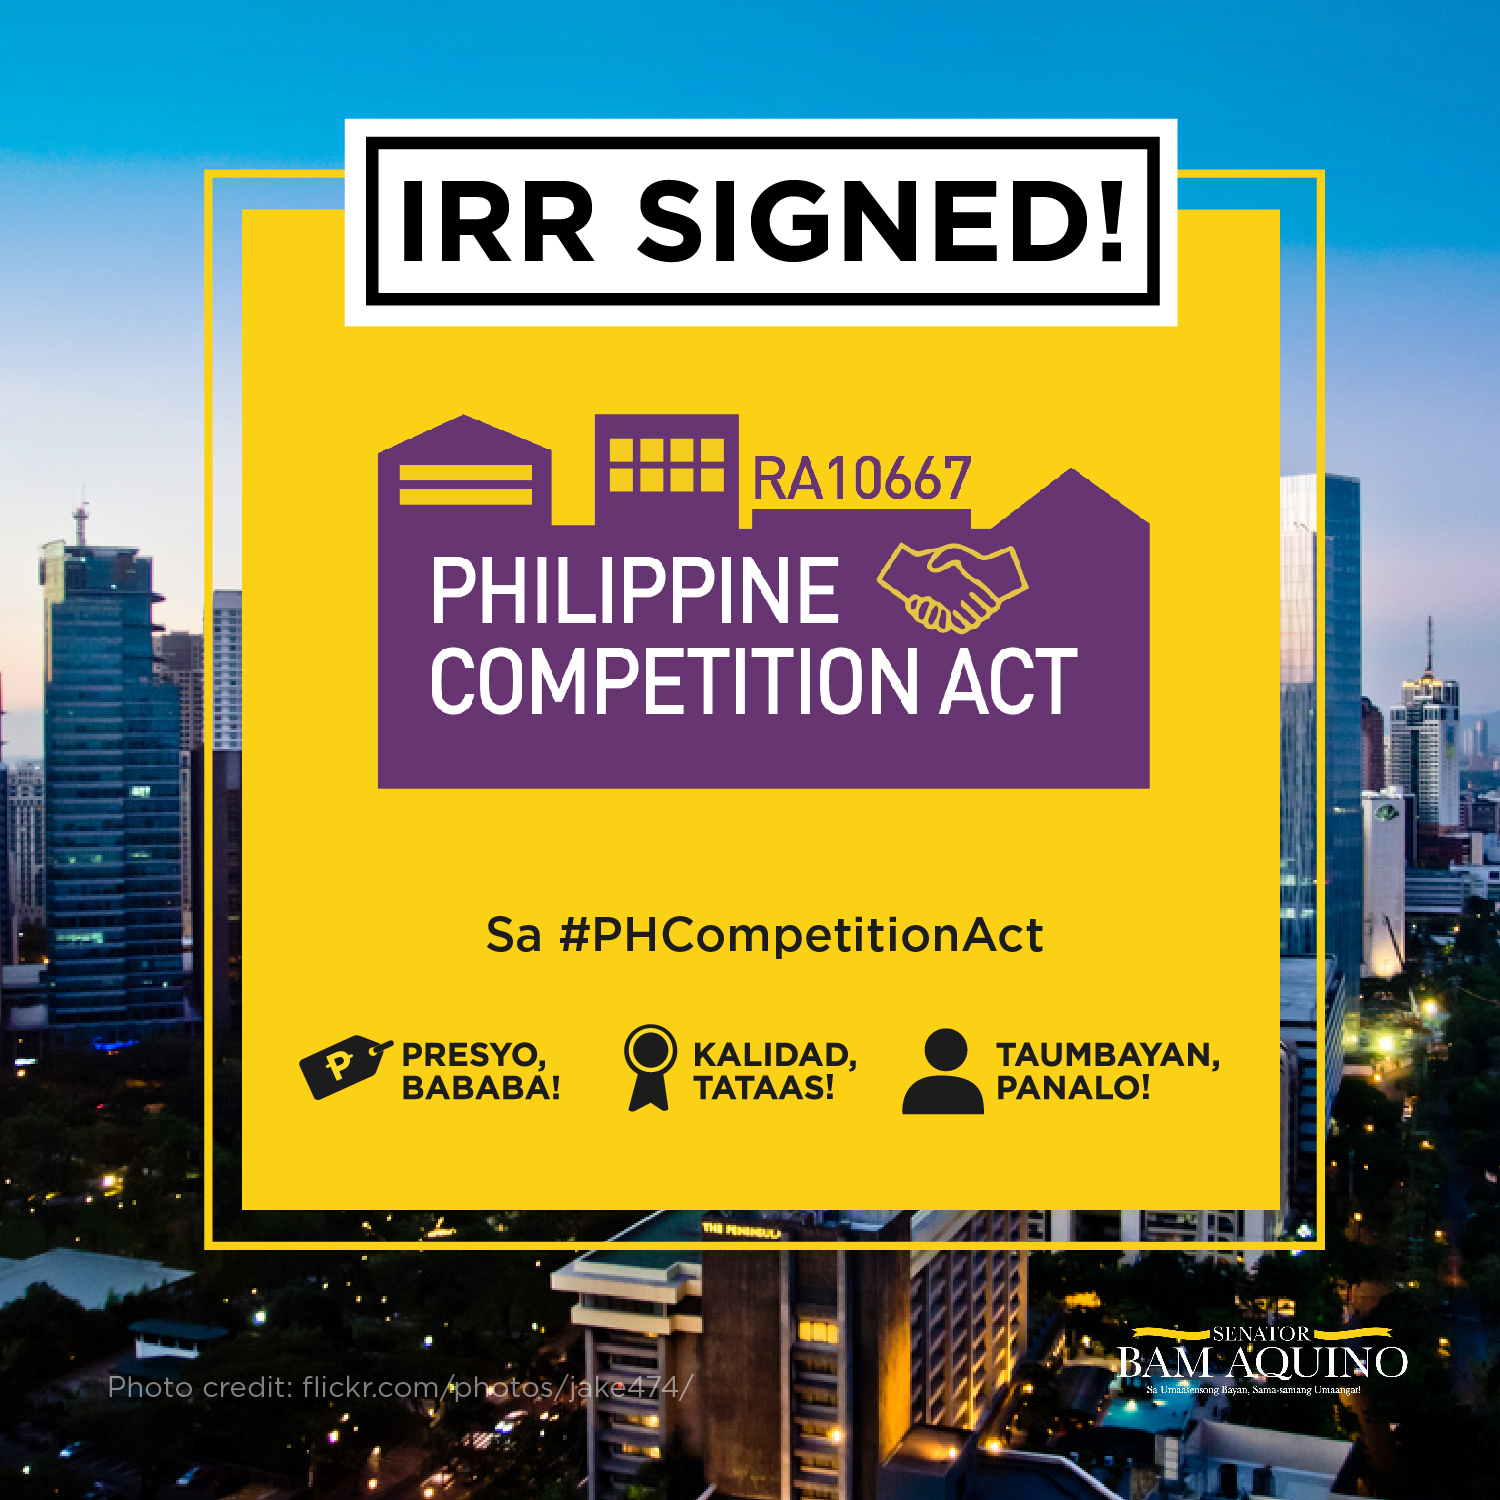 Sen. Bam: Lower prices of goods, services with IRR for PH Competition Act signed